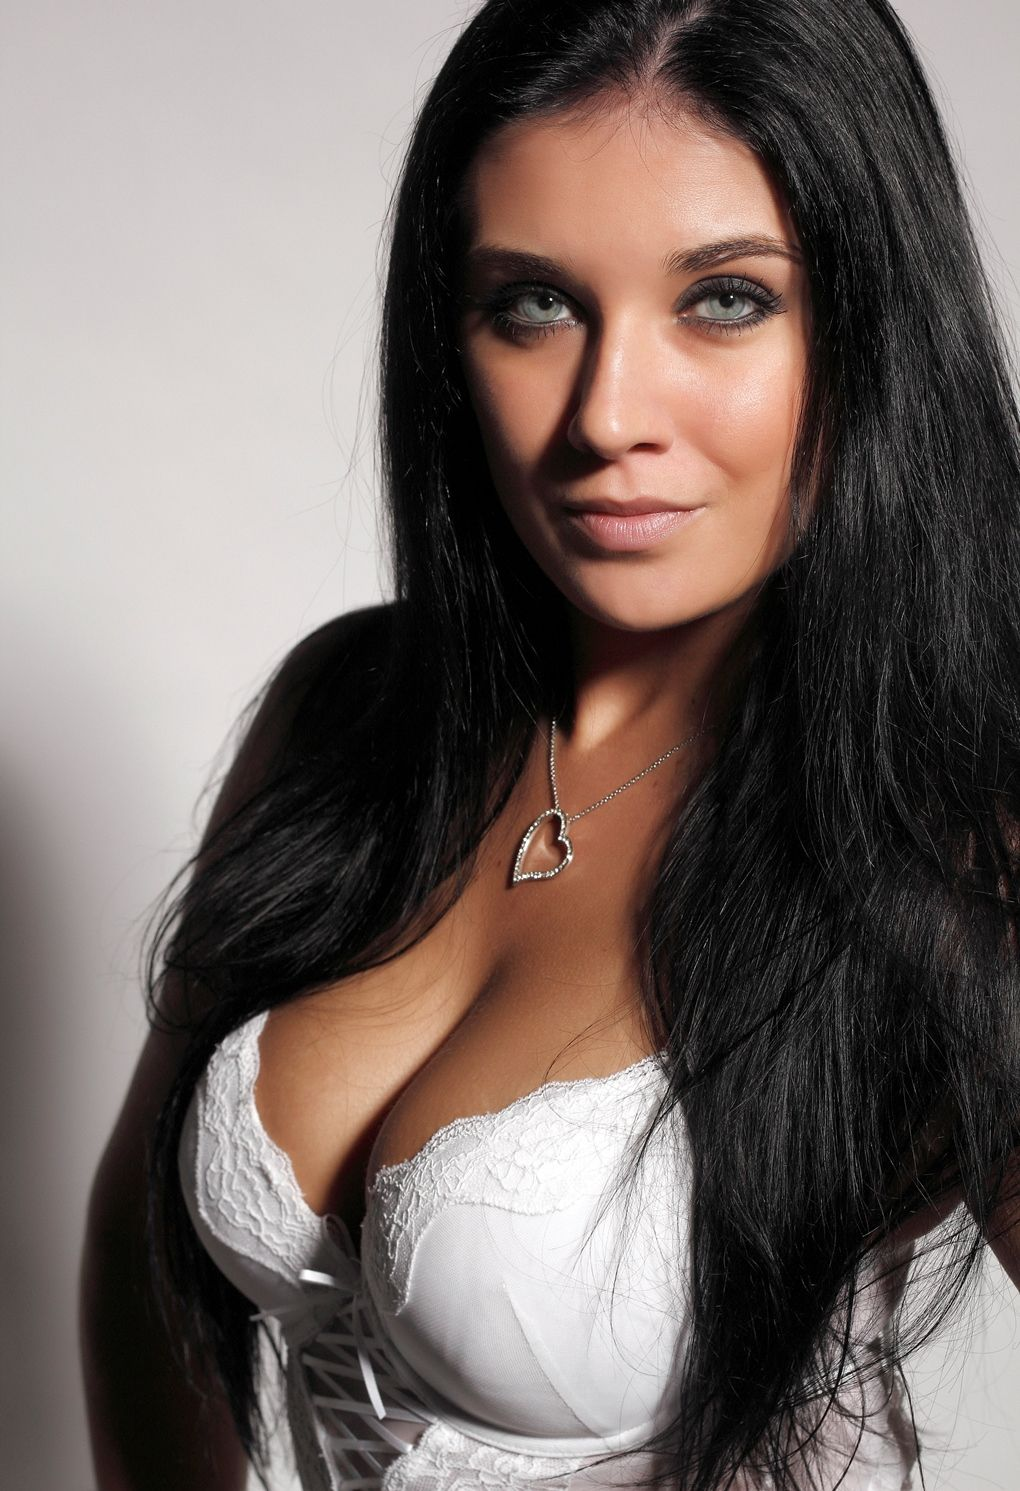 Amazing Czech Girl Ivy From Hot Peppers Prague